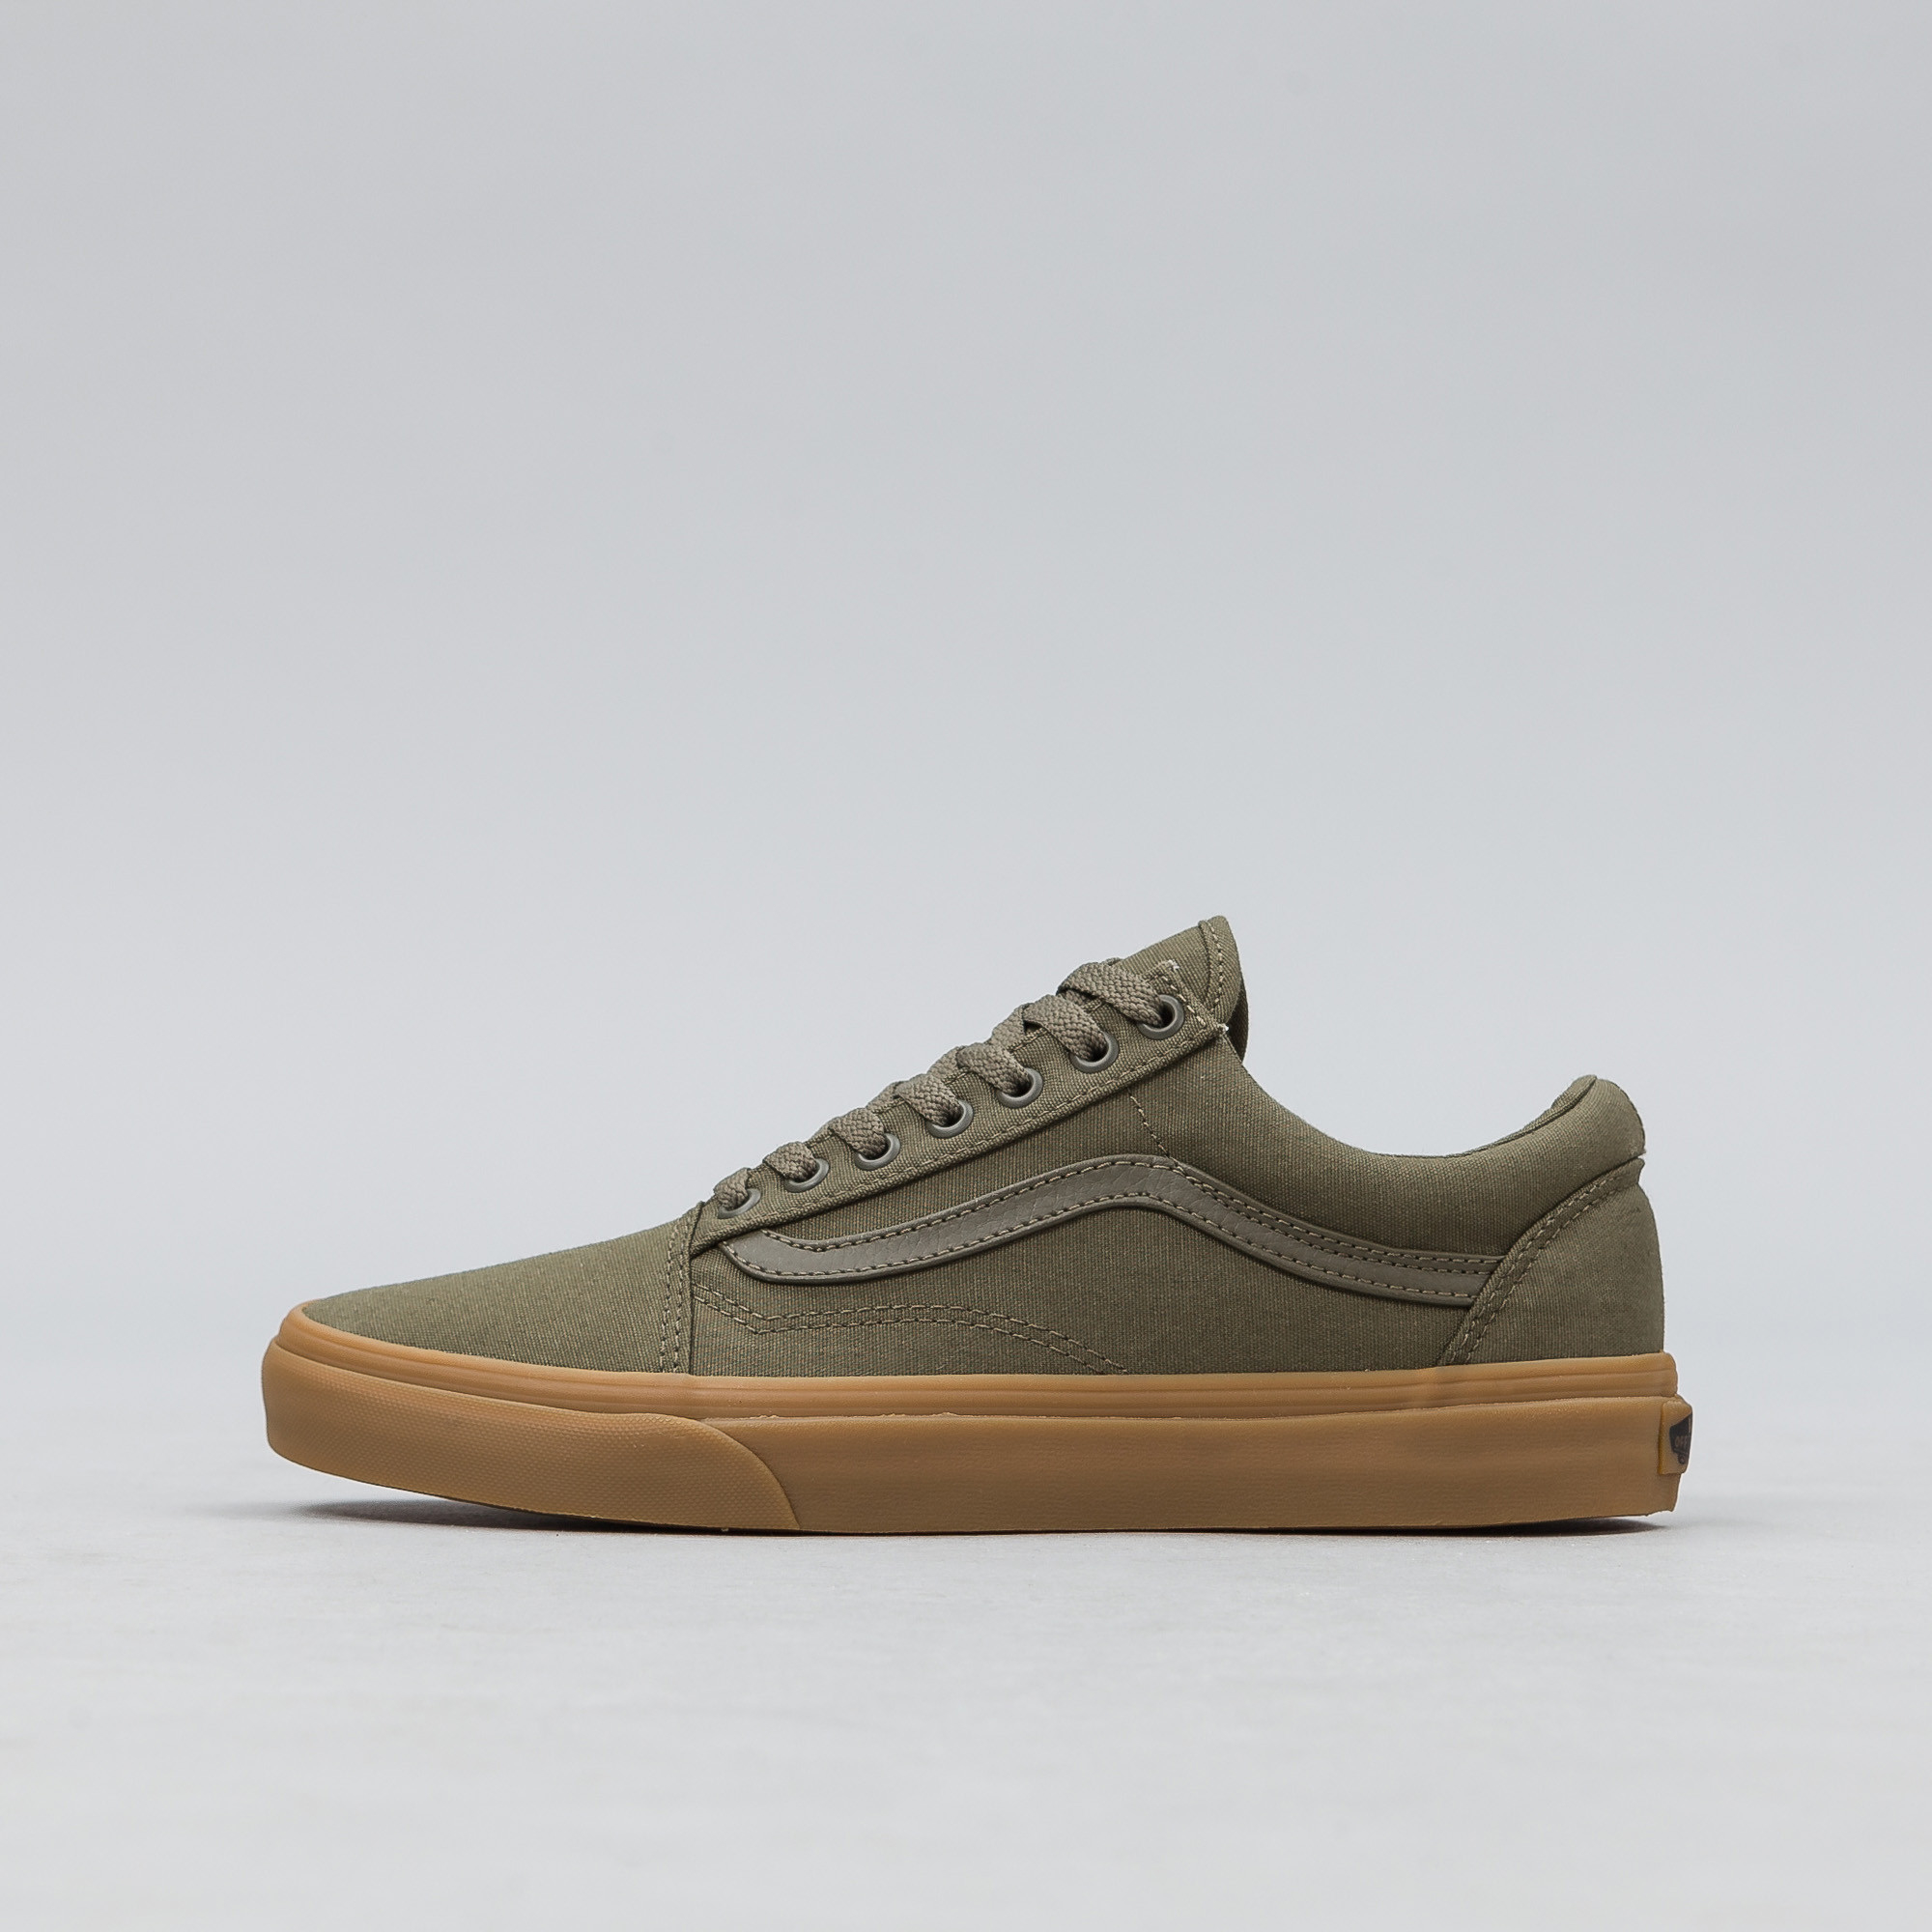 6a2c8179177f73 Lyst - Vans Canvas Gum Old Skool In Ivy Green for Men